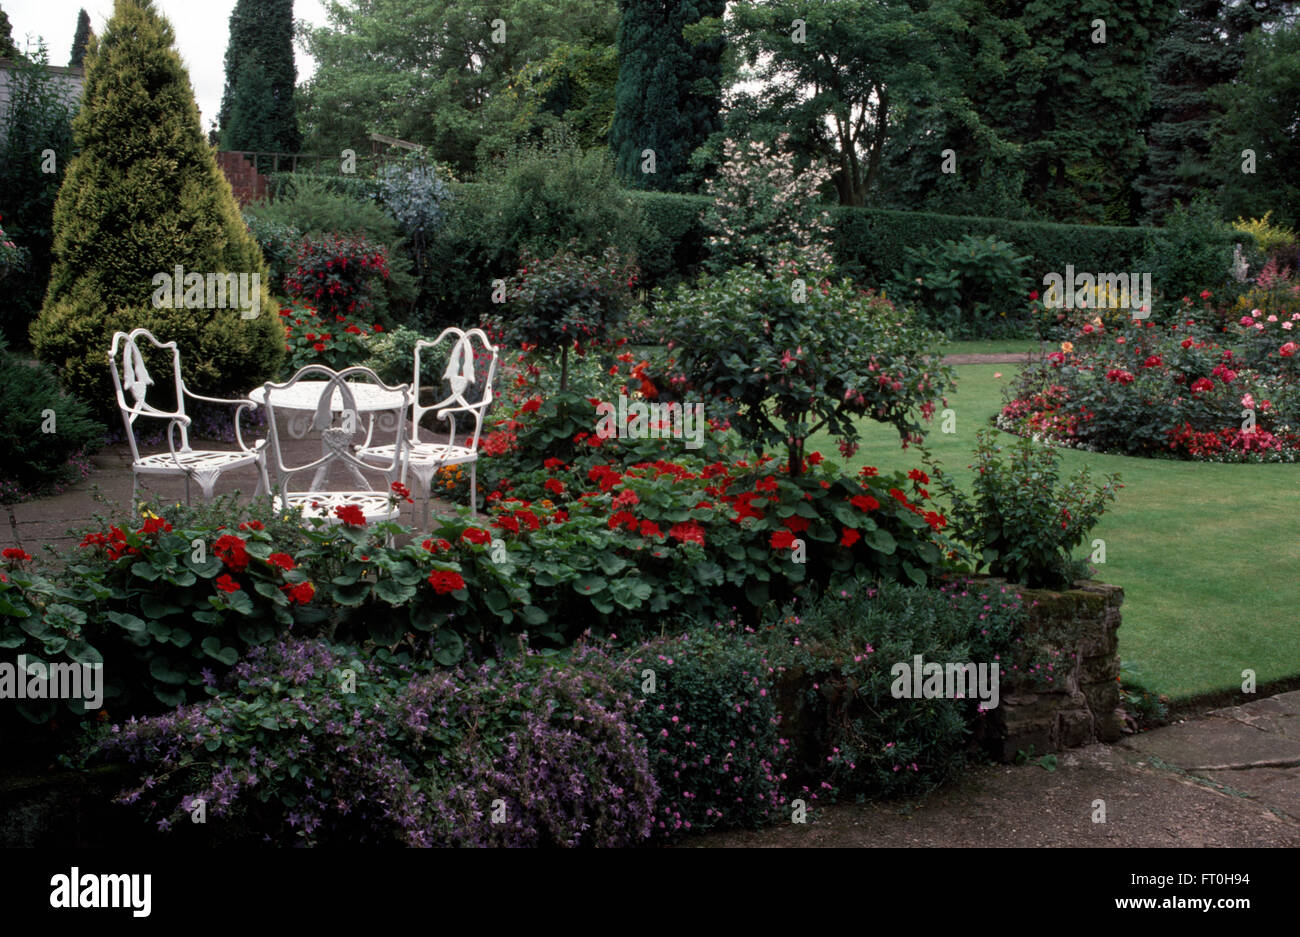 White Wrought Iron Table And Chairs Part - 41: Stock Photo - White Wrought Iron Table And Chairs On Patio With A Border Of  Red Geraniums And Fuchsia In A Well Tended Garden